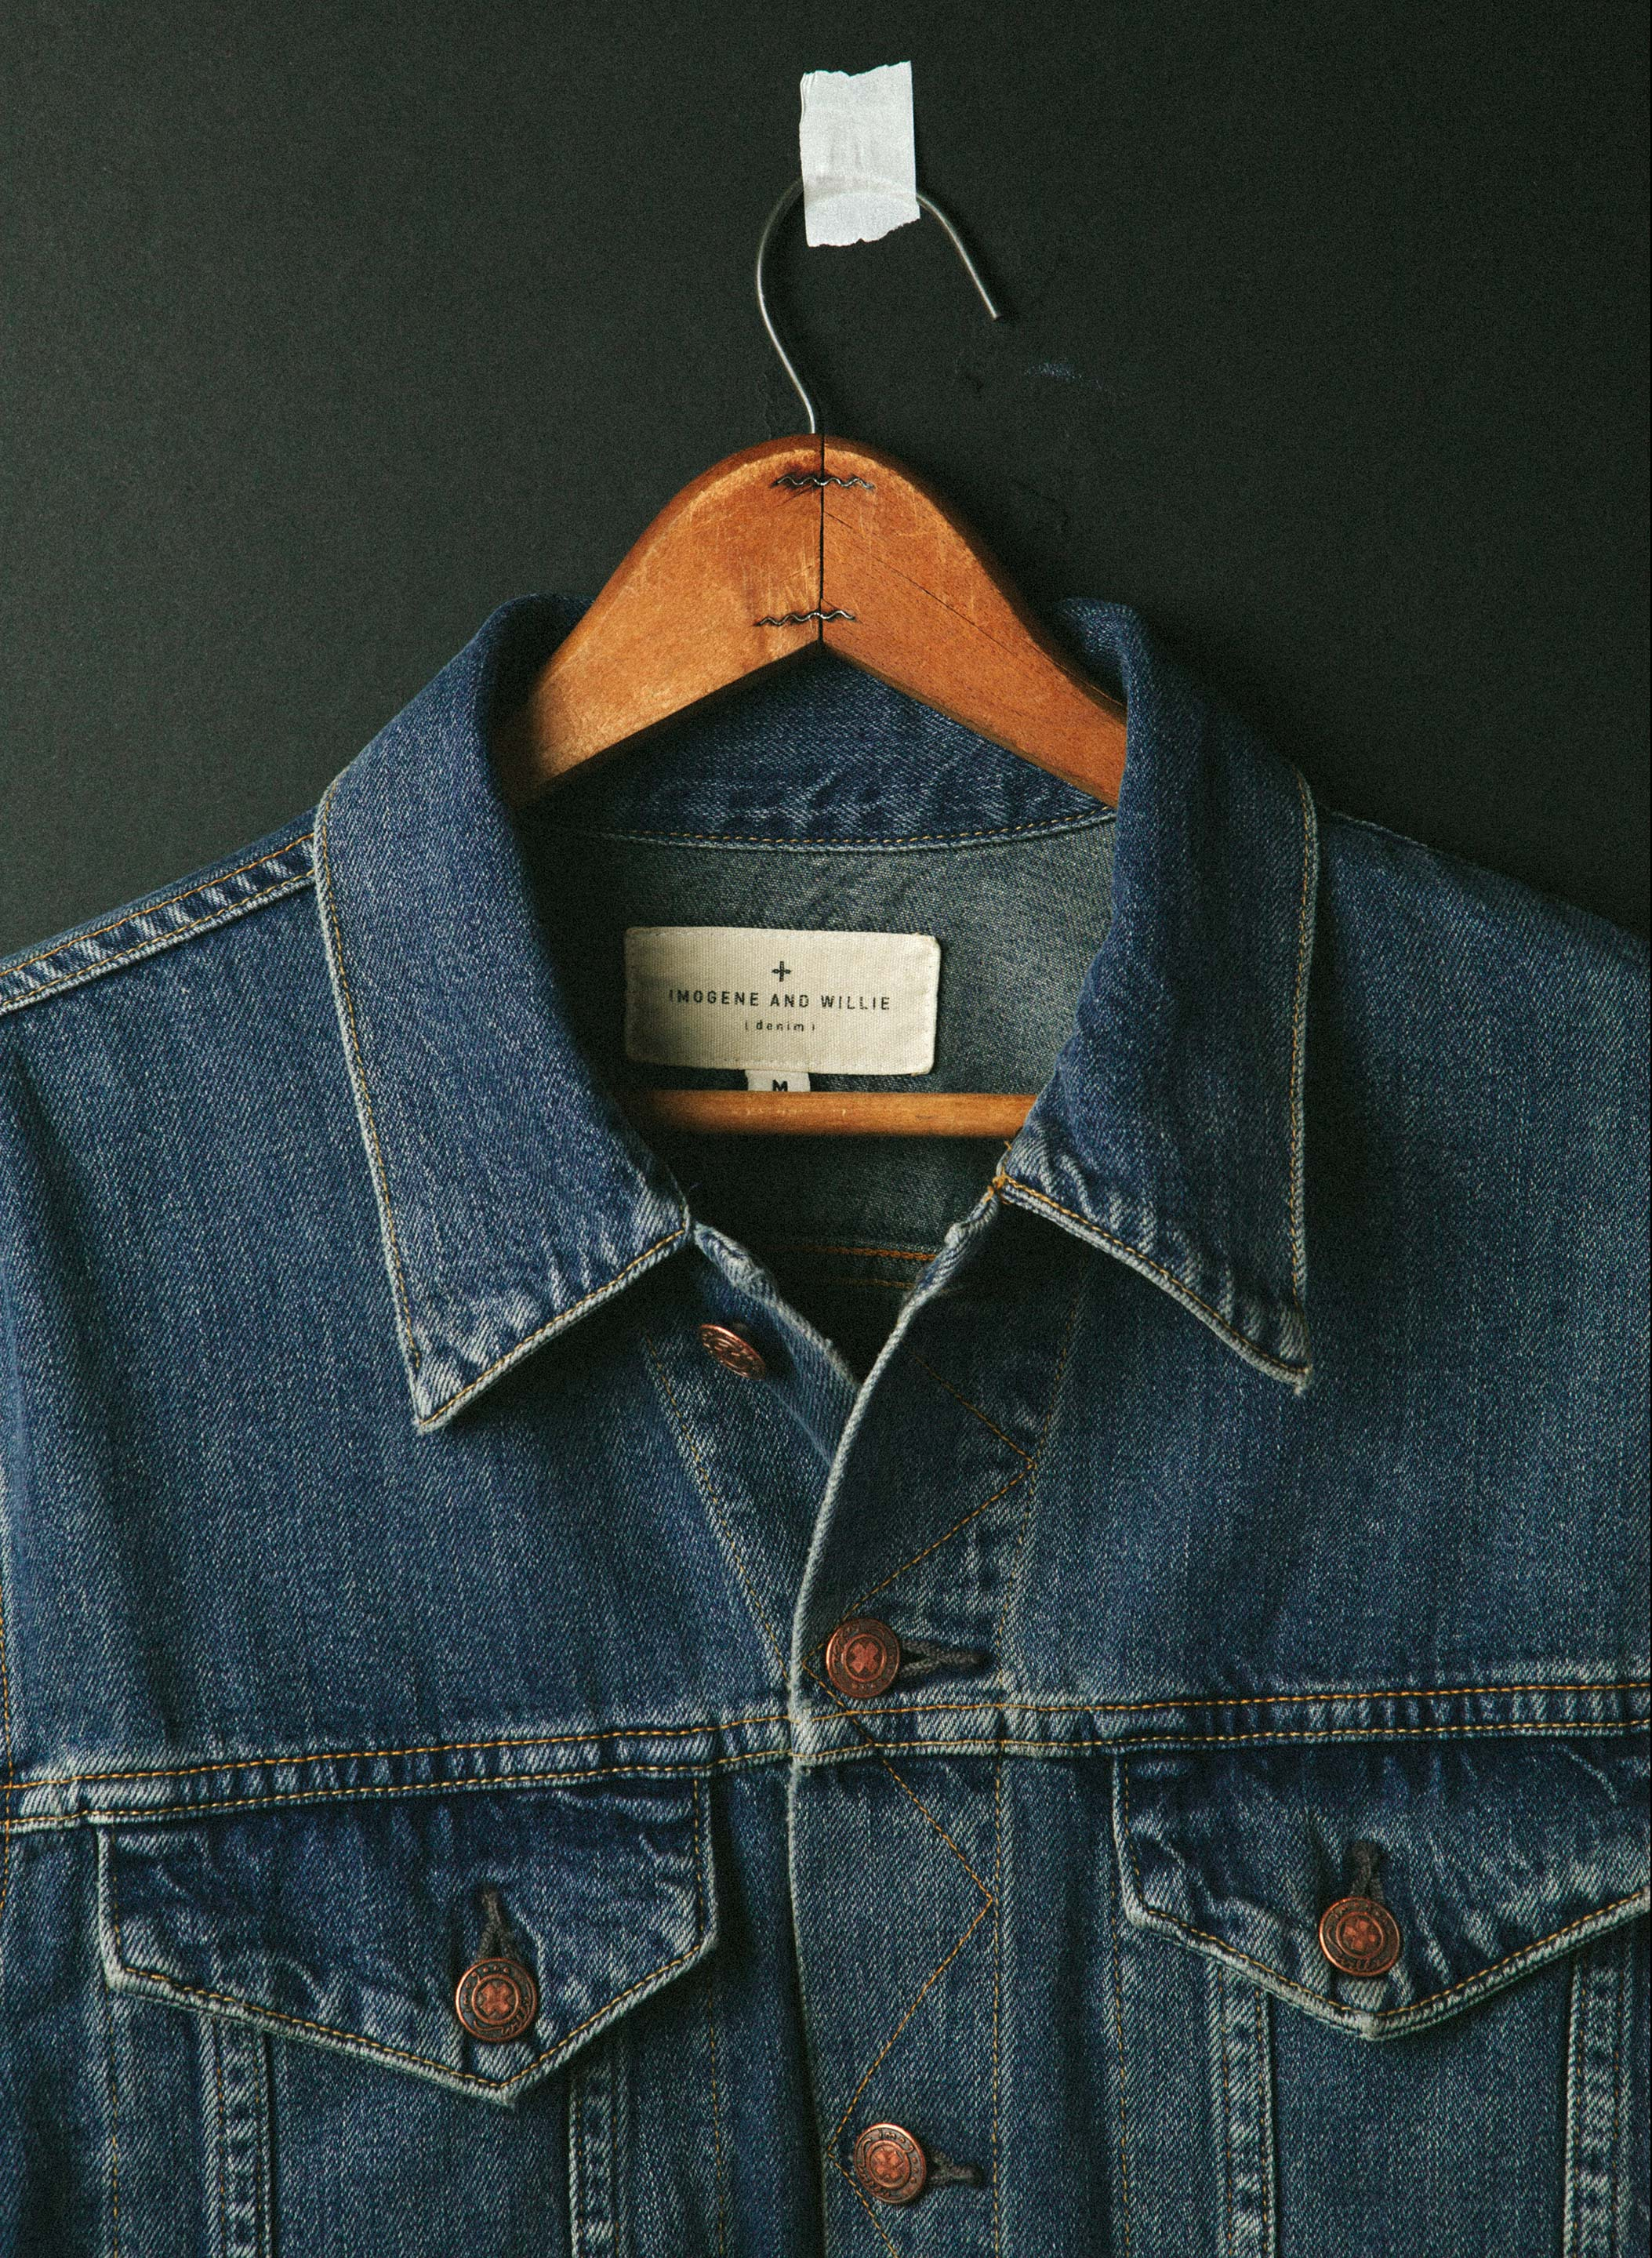 imogene + willie - wilkins jacket in washed indigo